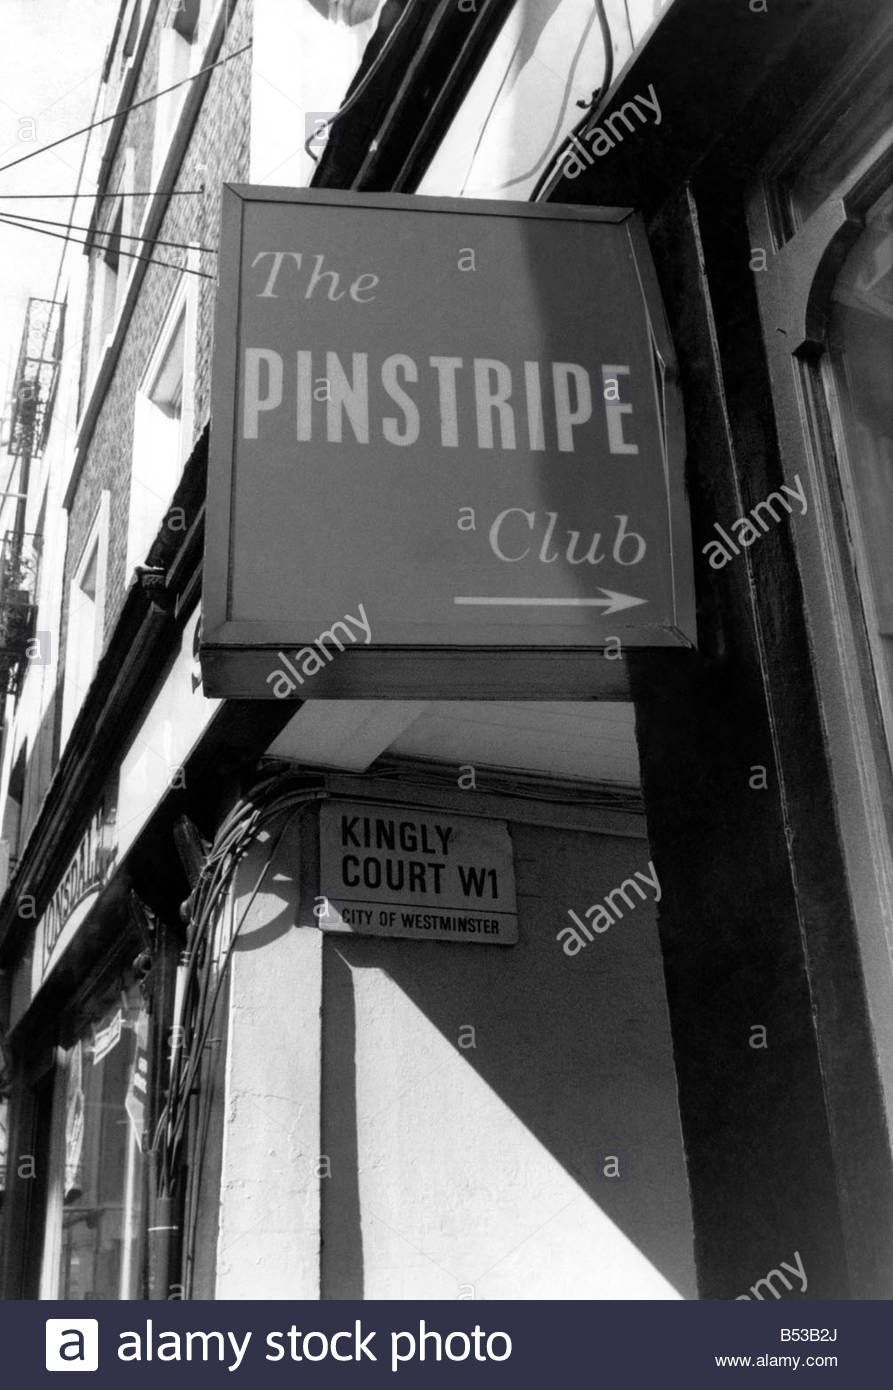 The Pinstripe Club in Kingly Court, haunt of the rich and famous in London  of the 1960s, and where John Profumo first met Christine Keeler.